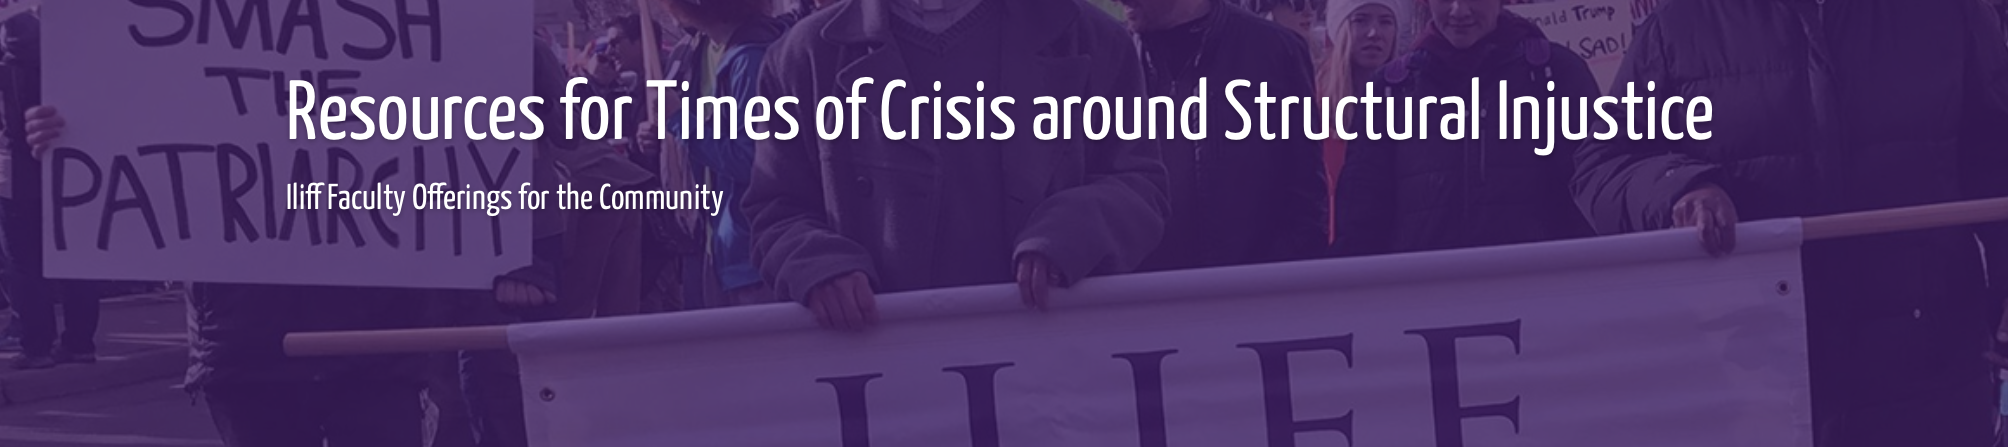 Resources for Times of Crisis around Structural Injustice